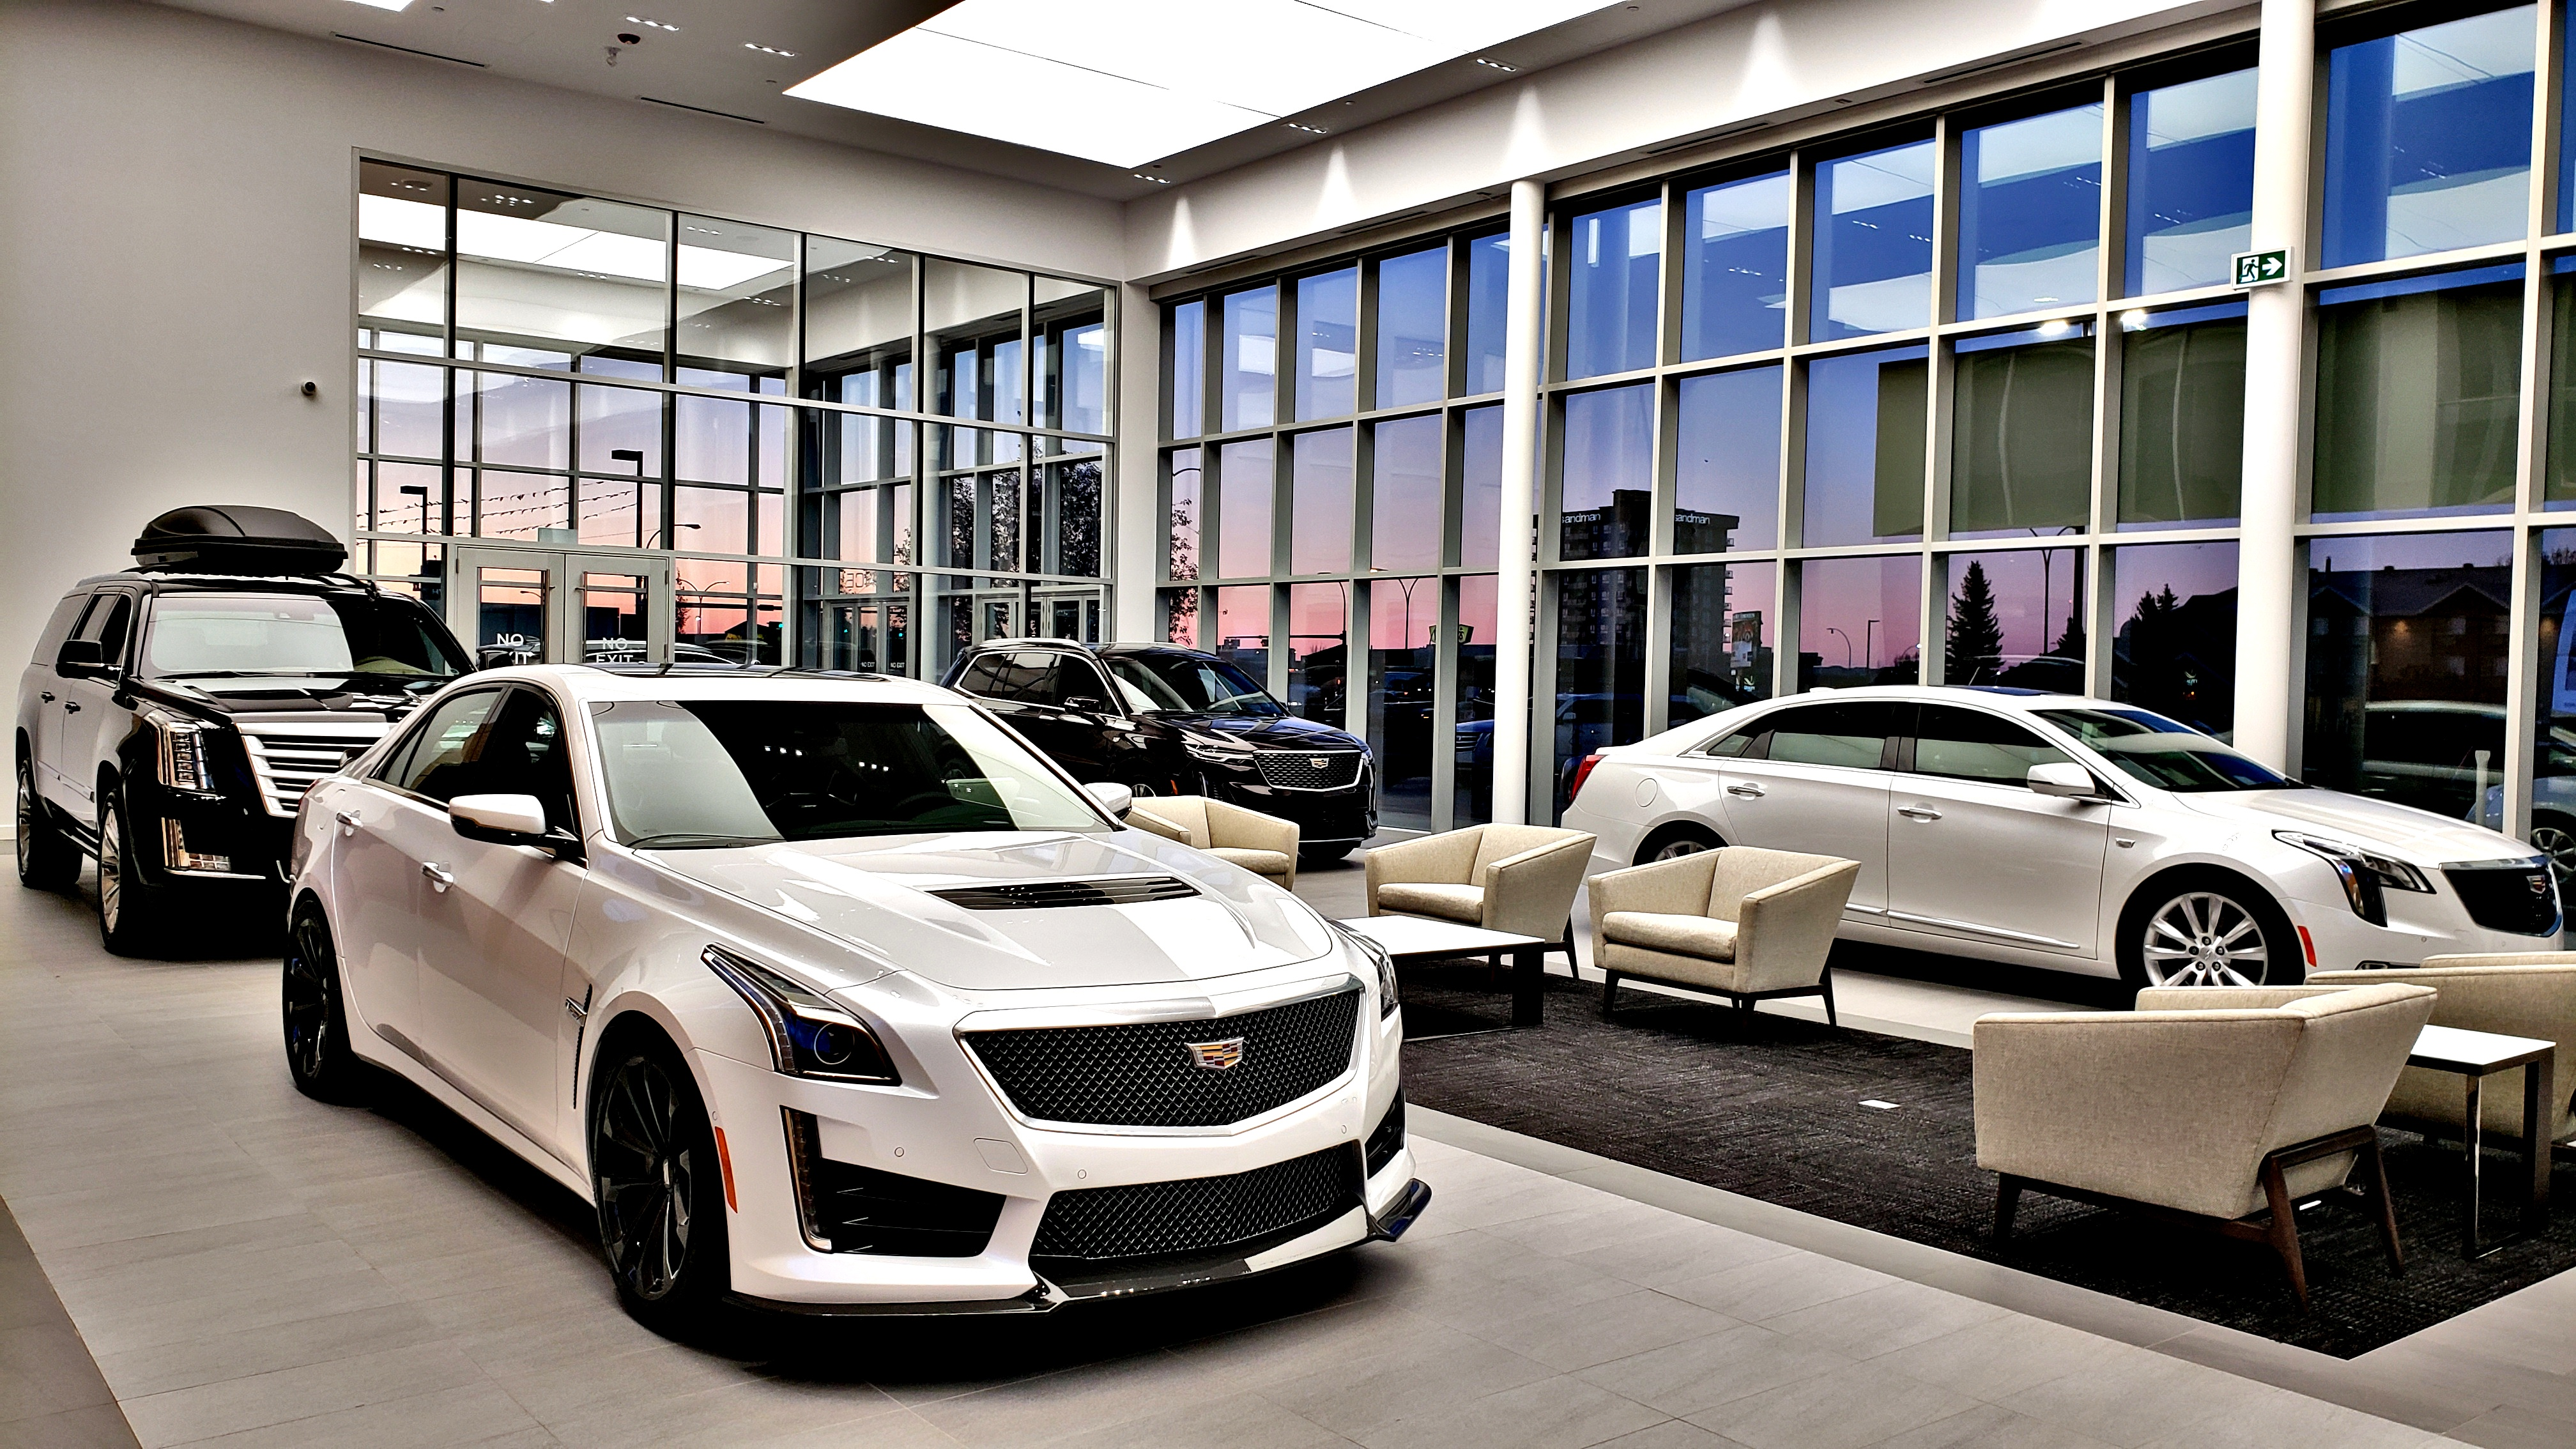 Standalone Cadillac Dealerships Offer Upgraded Customer Experience